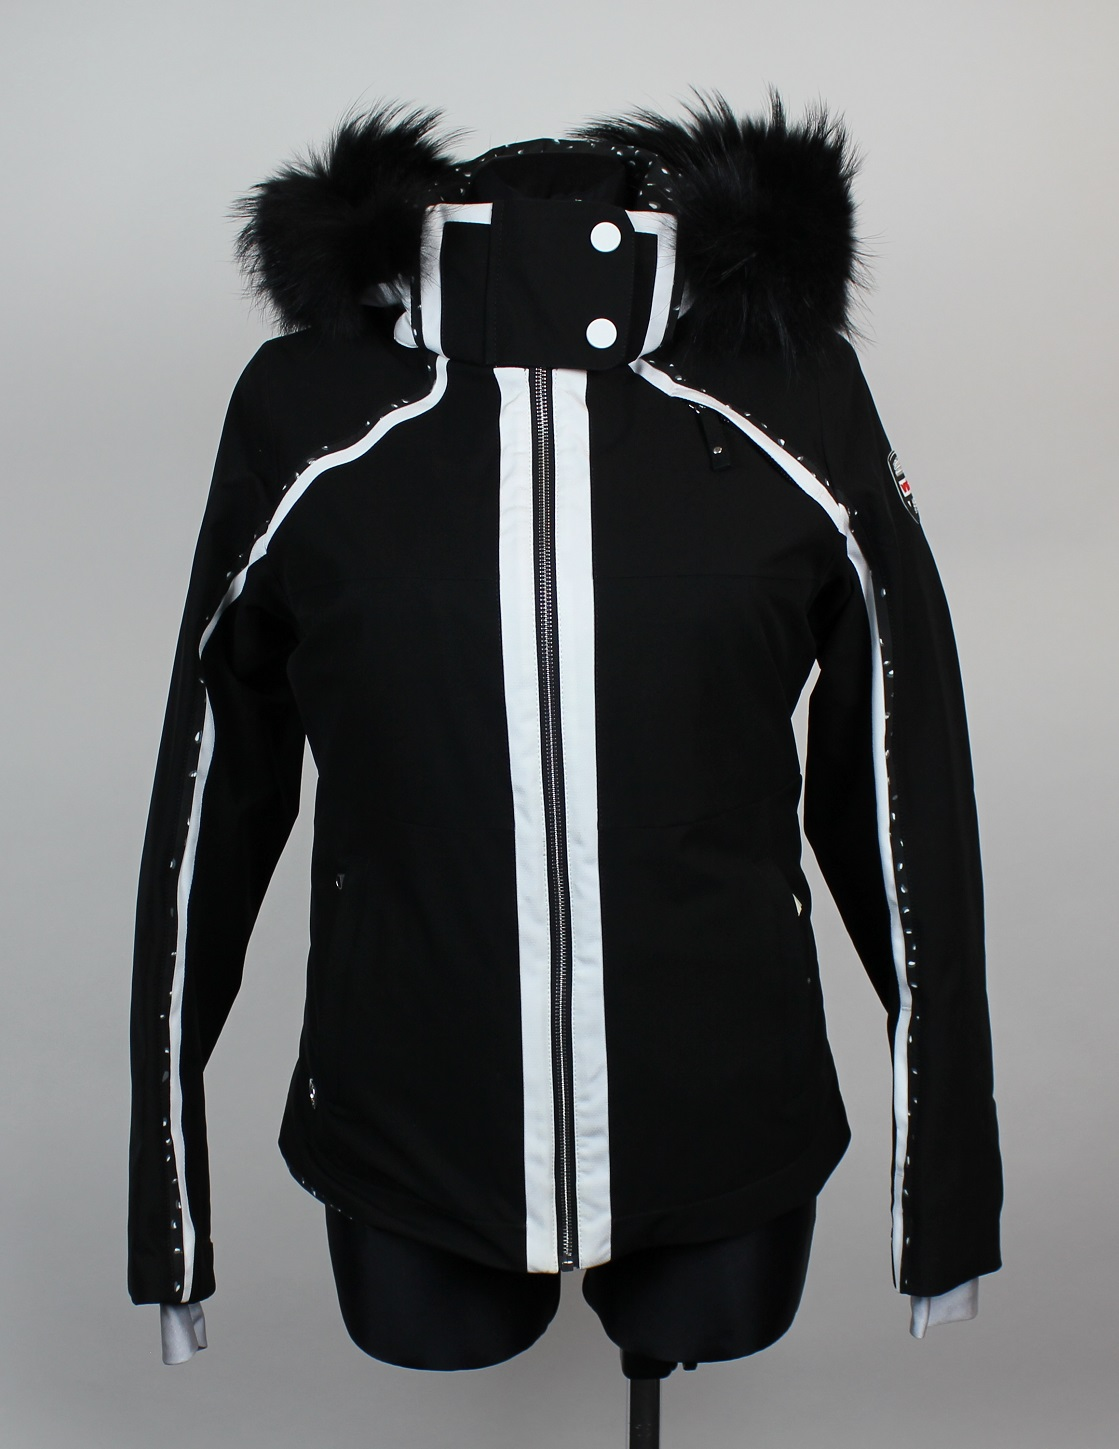 Vist Antea Leopard Insulated Ski Jacket